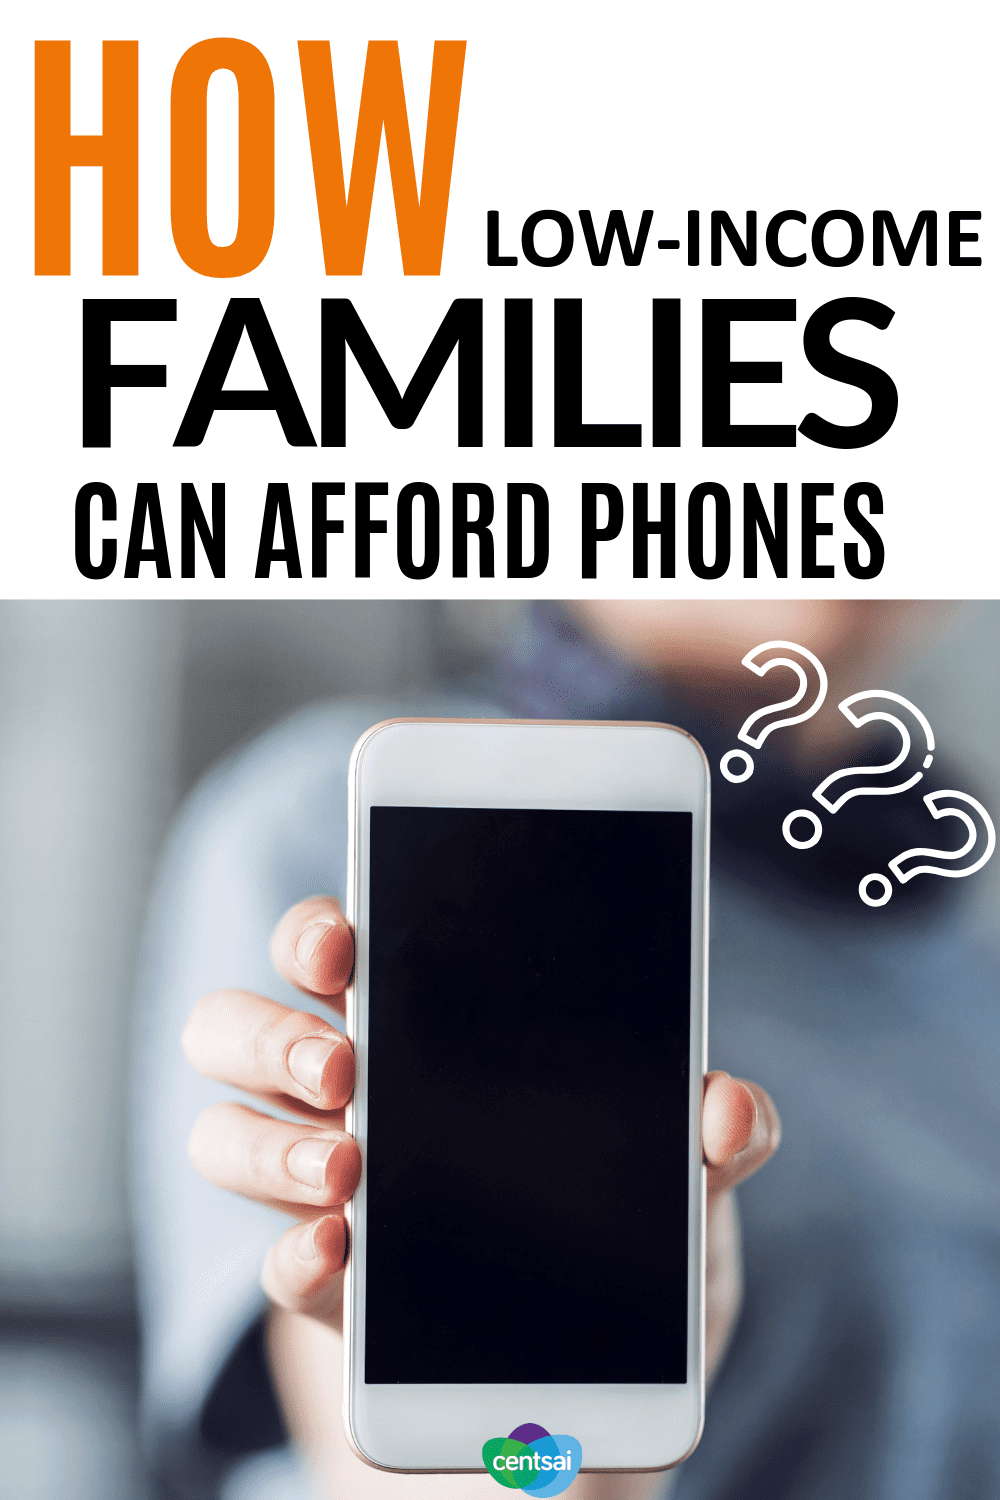 How Low-Income Families Can Afford Phones. If you need a phone, but can't afford it, you're not alone. Learn what Lifeline is and how it can help you get what you need. Learn more and check out this post! #personalfinance #finance #financeplanning